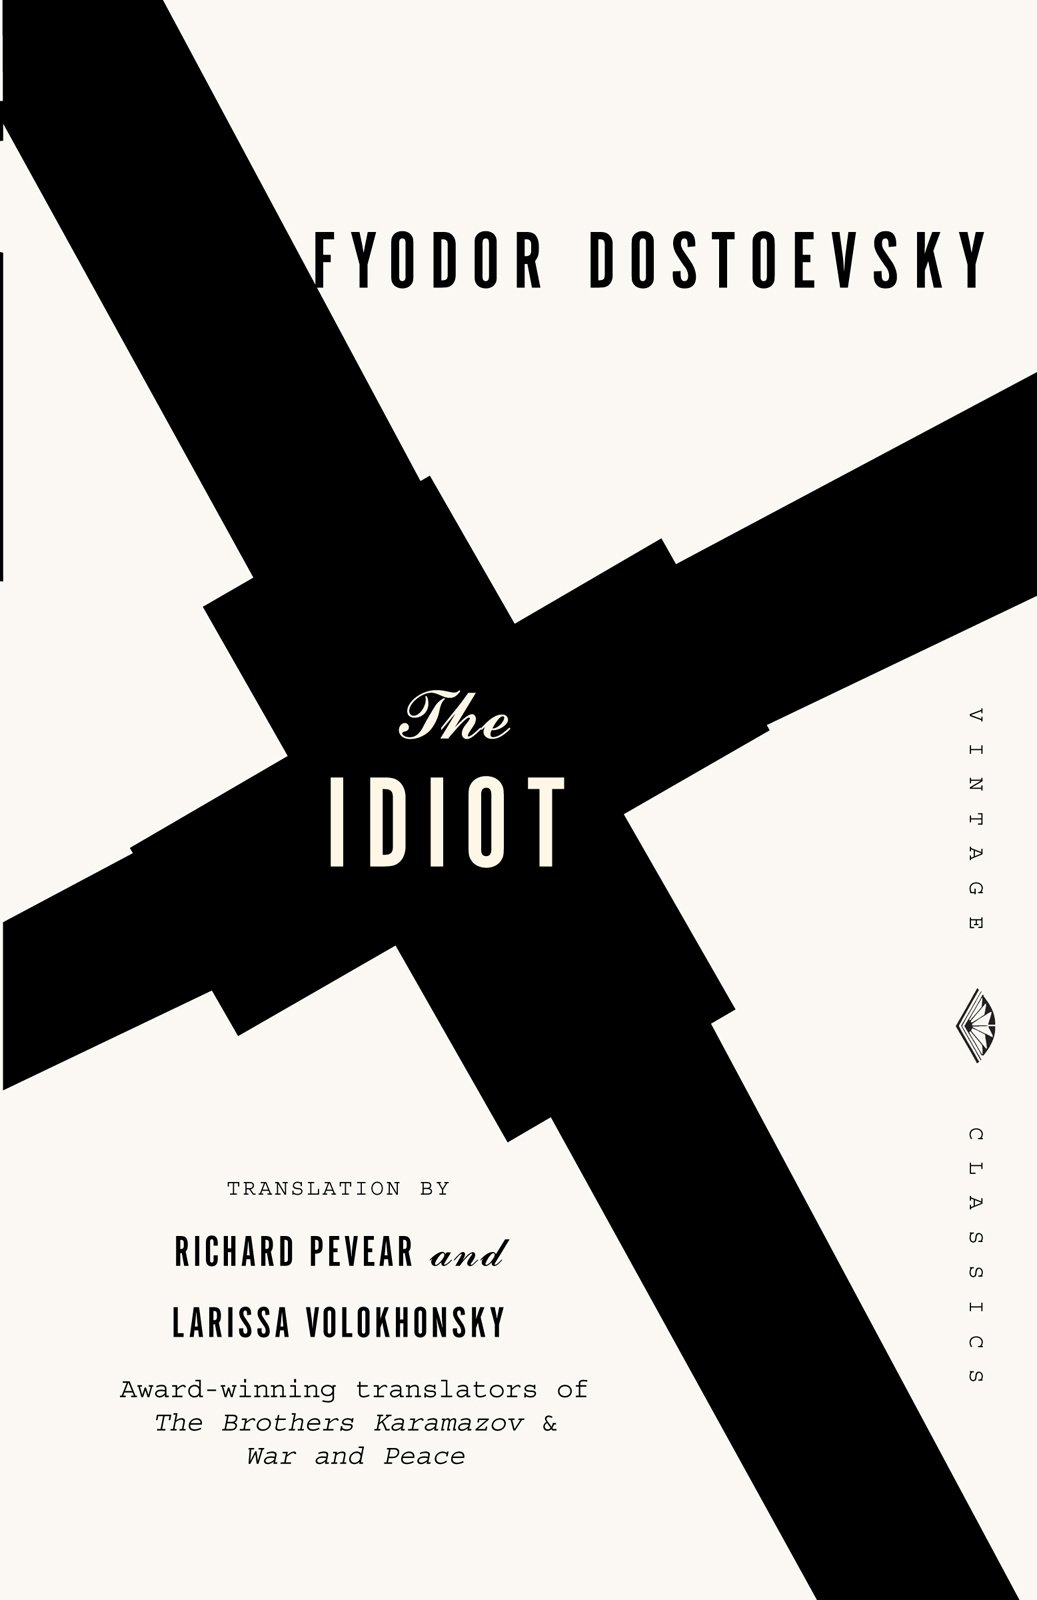 The Idiot was the first of six Dostoevsky jackets Mendelsund was asked to design.  Dostoyevsky, Meet Mendelsund by Aaron Britt